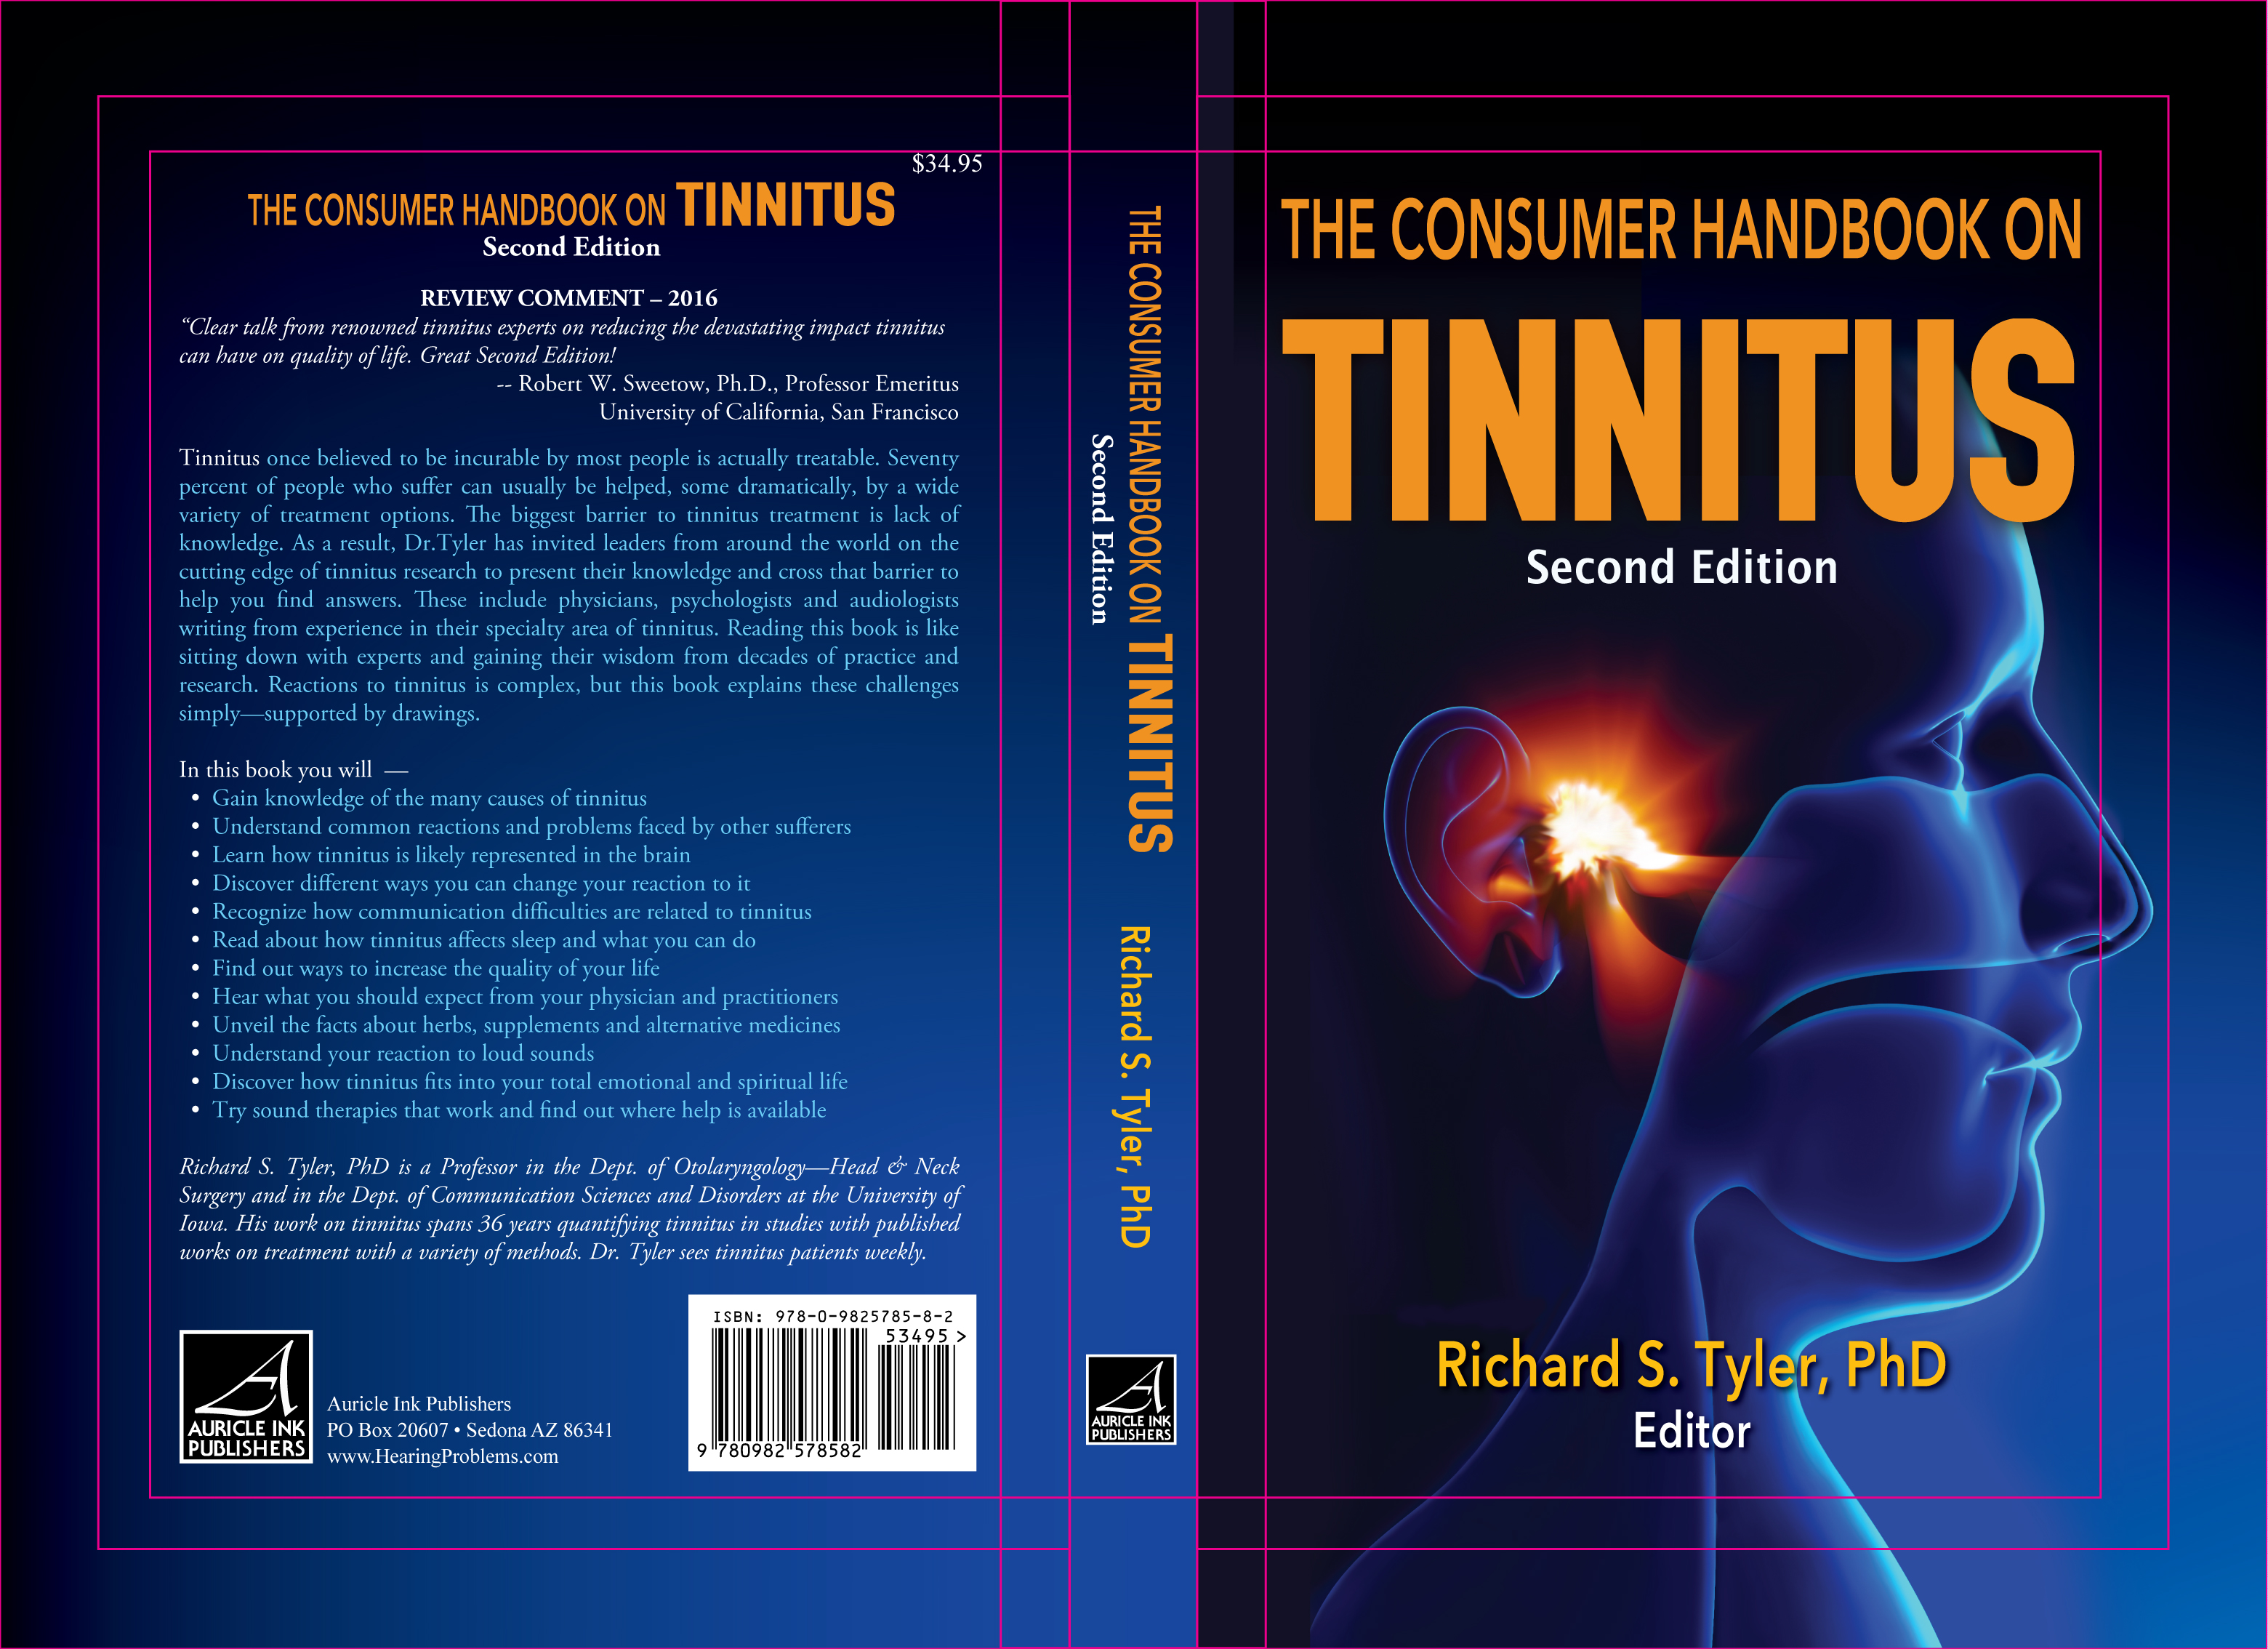 Consumer-Book-on-Tenitus--layout-5